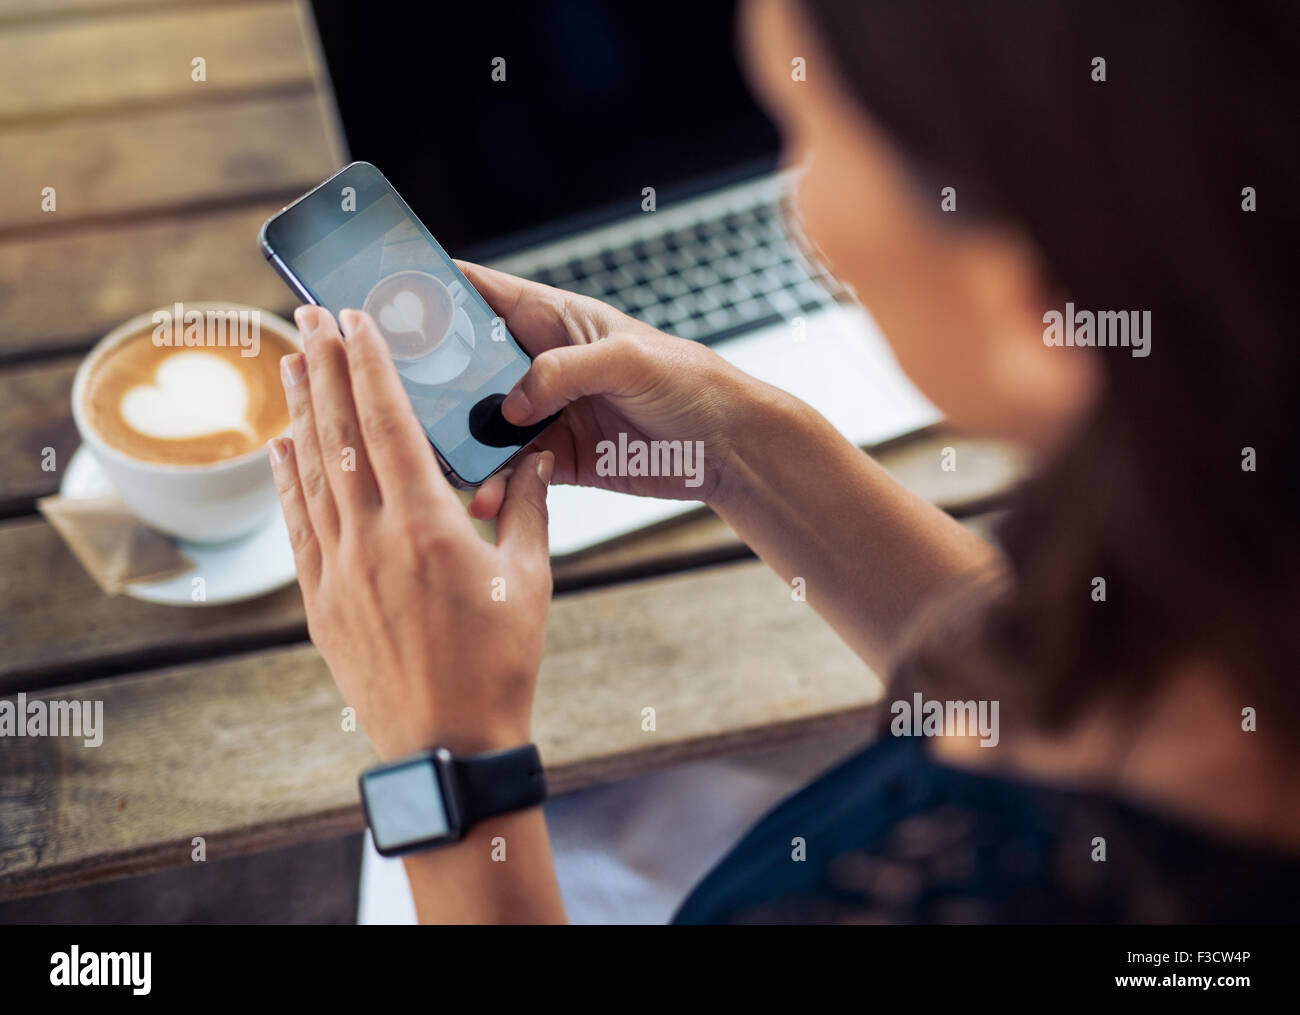 Close up shot of woman photographing a coffee of cup with her mobile phone while sitting at a cafe. - Stock Image